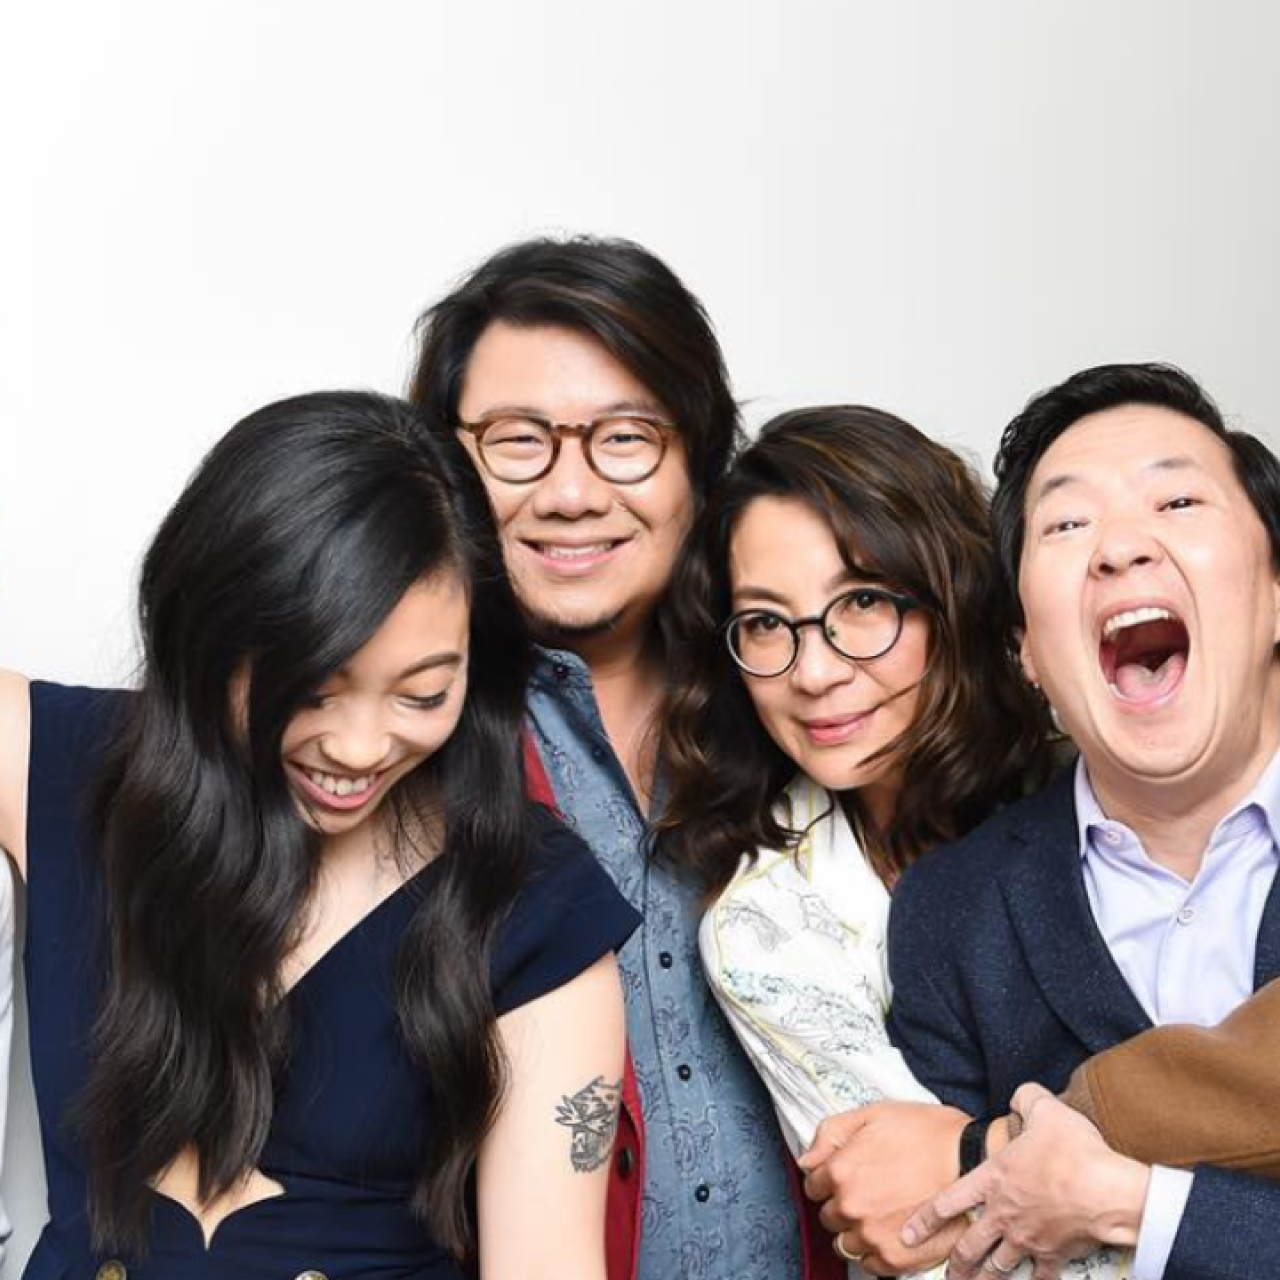 How do Asians react to 'Crazy Rich Asians'? We take a look at